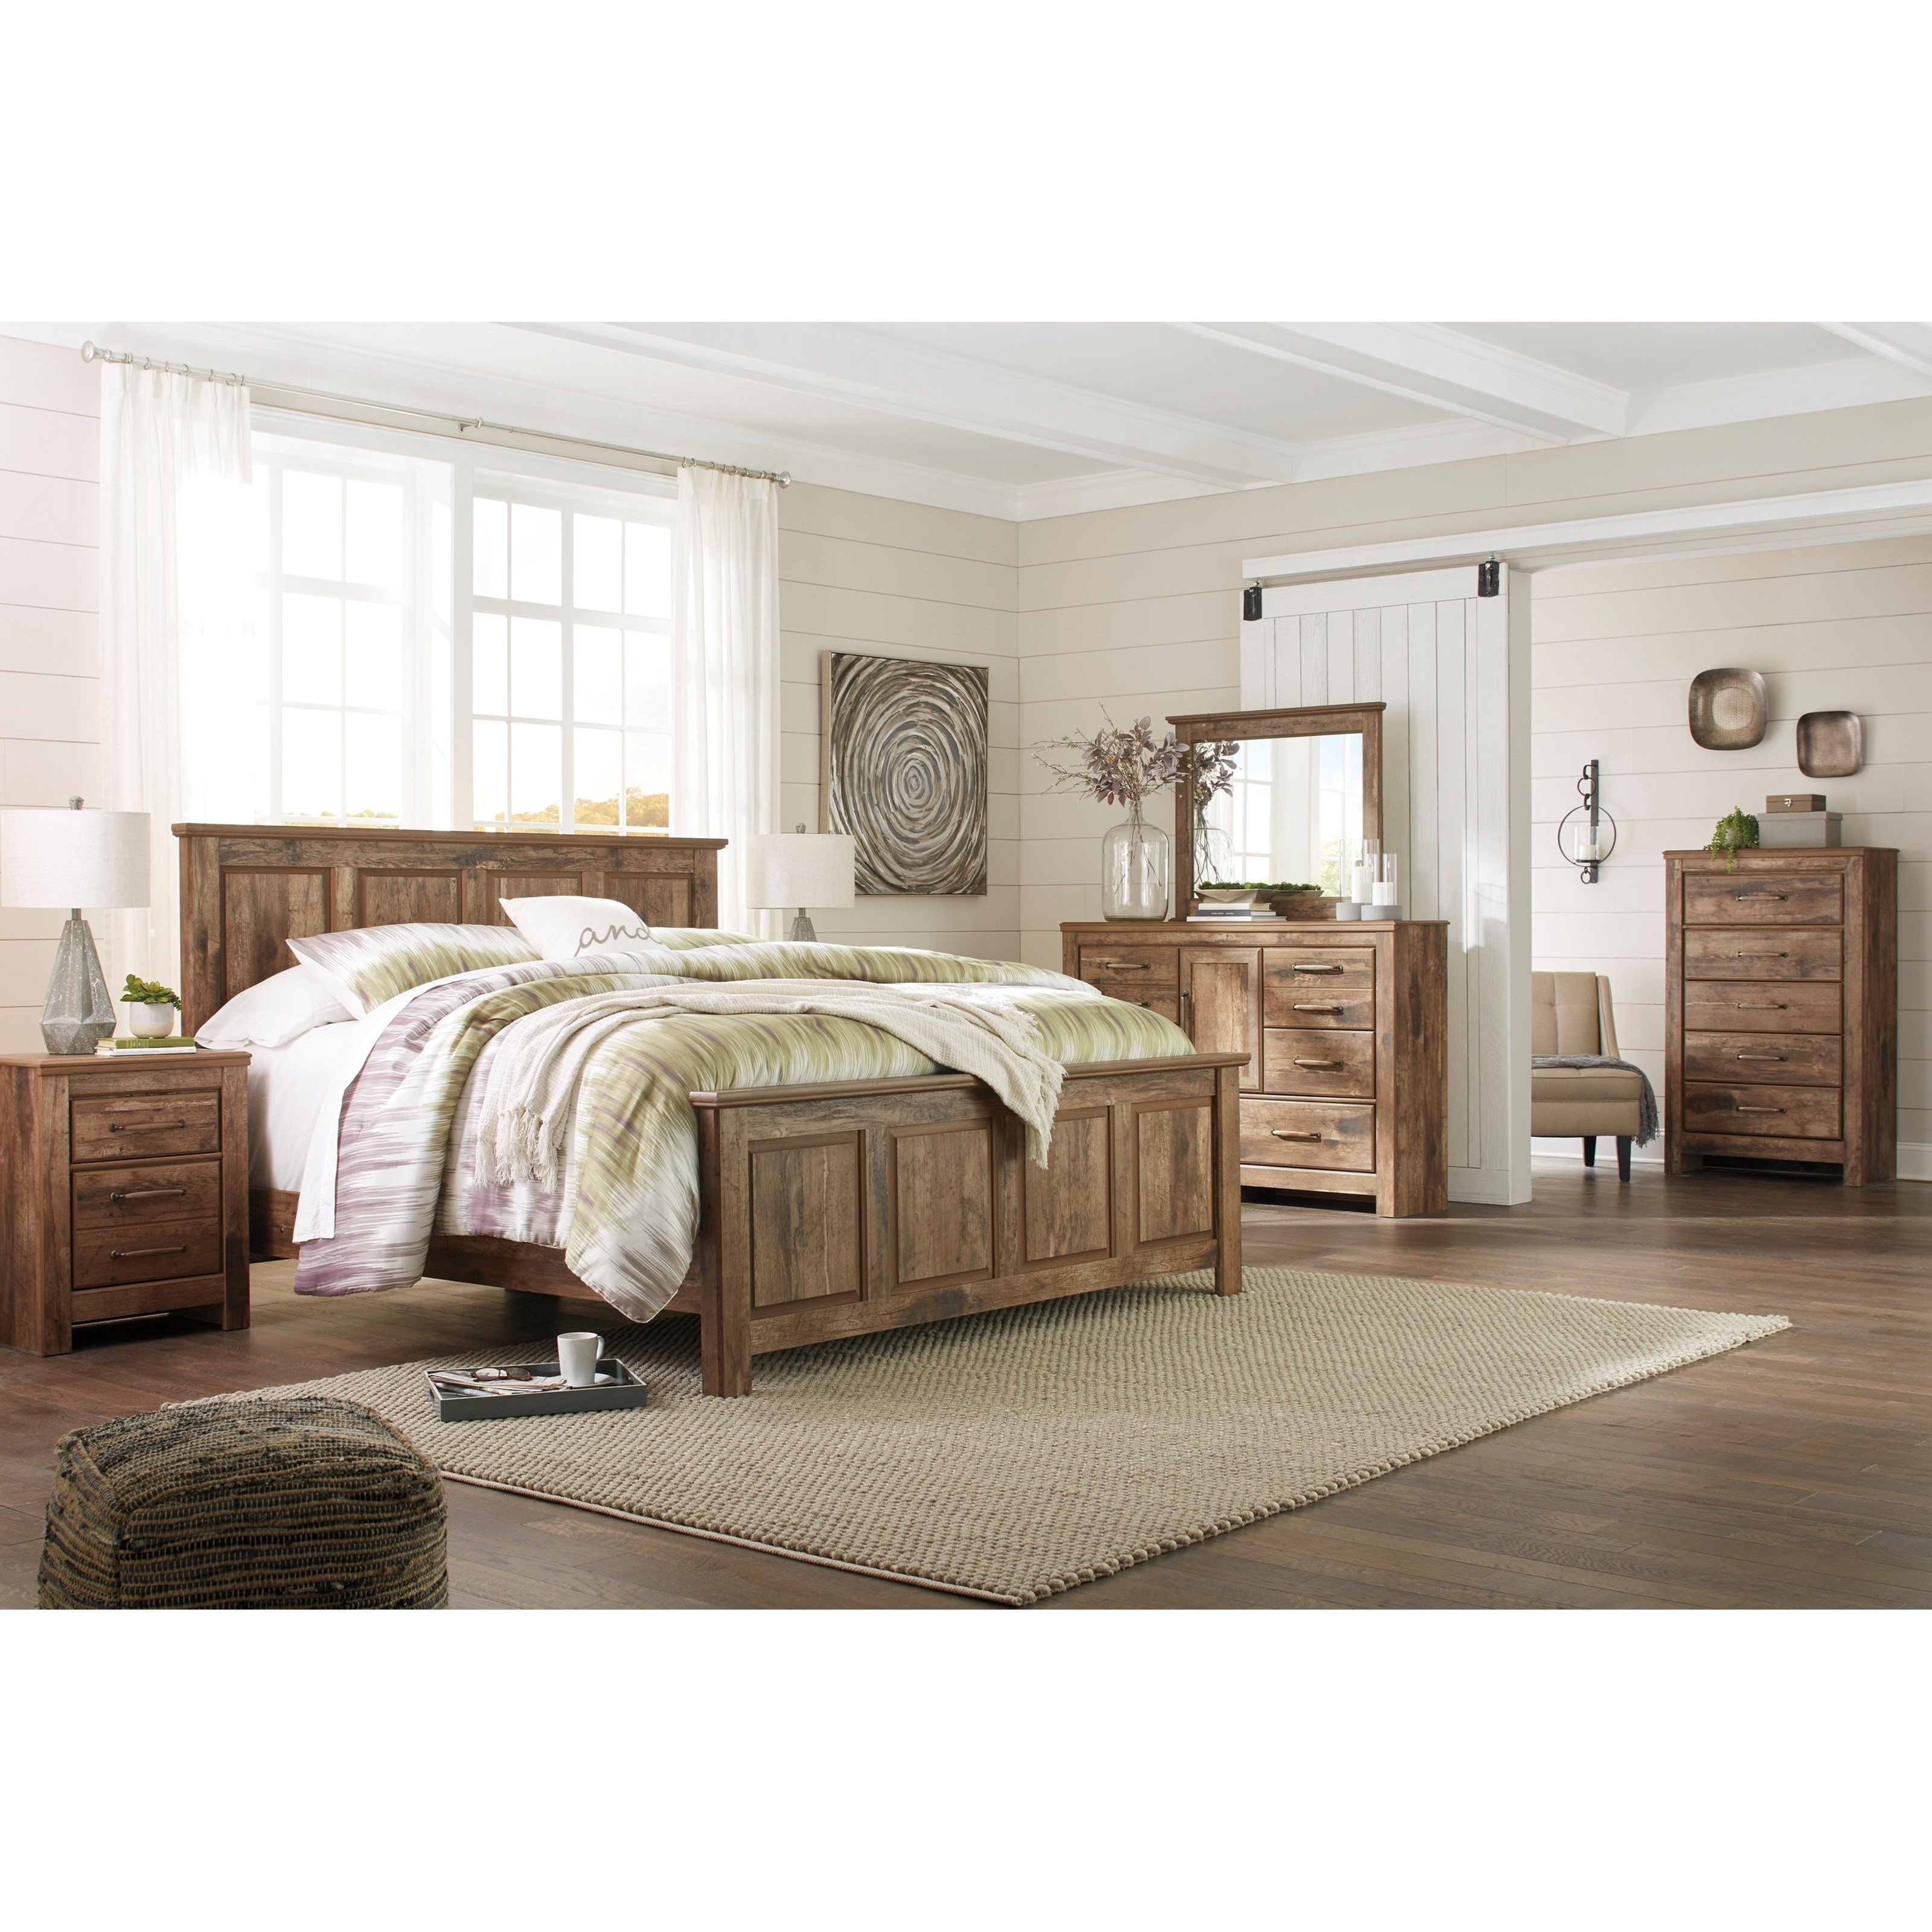 Best Signature Design By Ashley Blaneville Queen Bedroom Group With Pictures